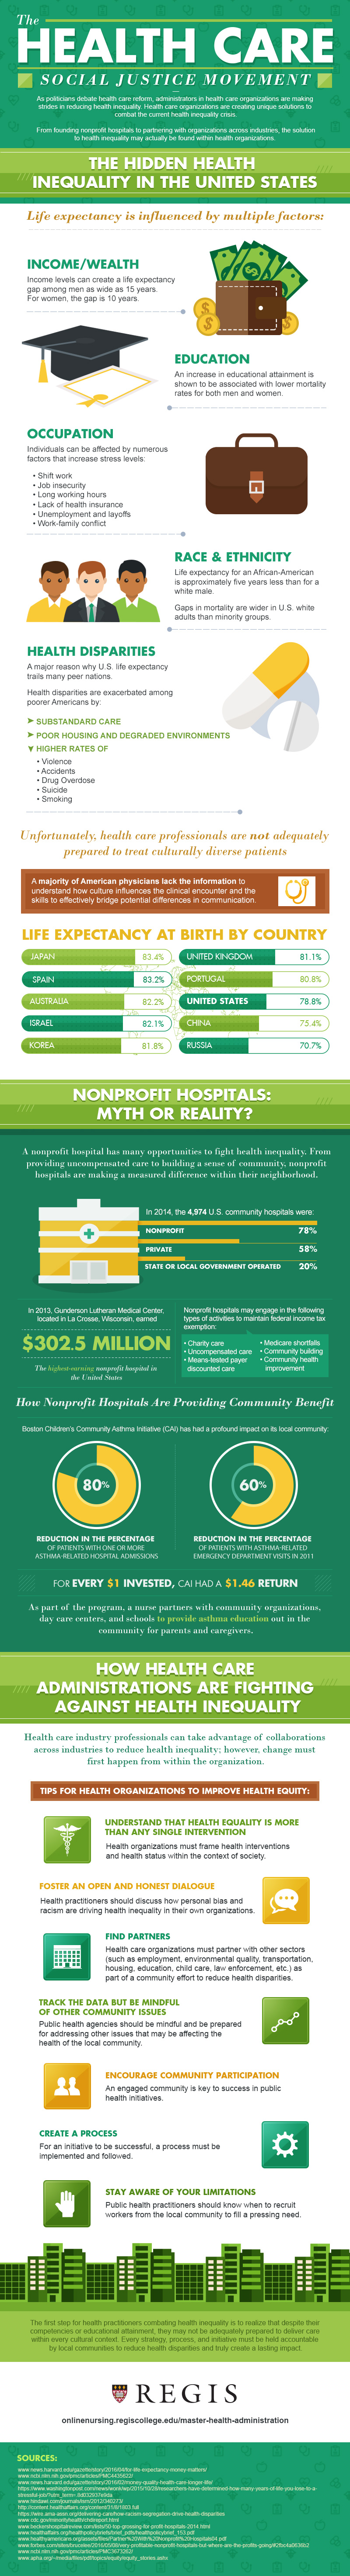 Healthcare Social Justice Movement Infographic